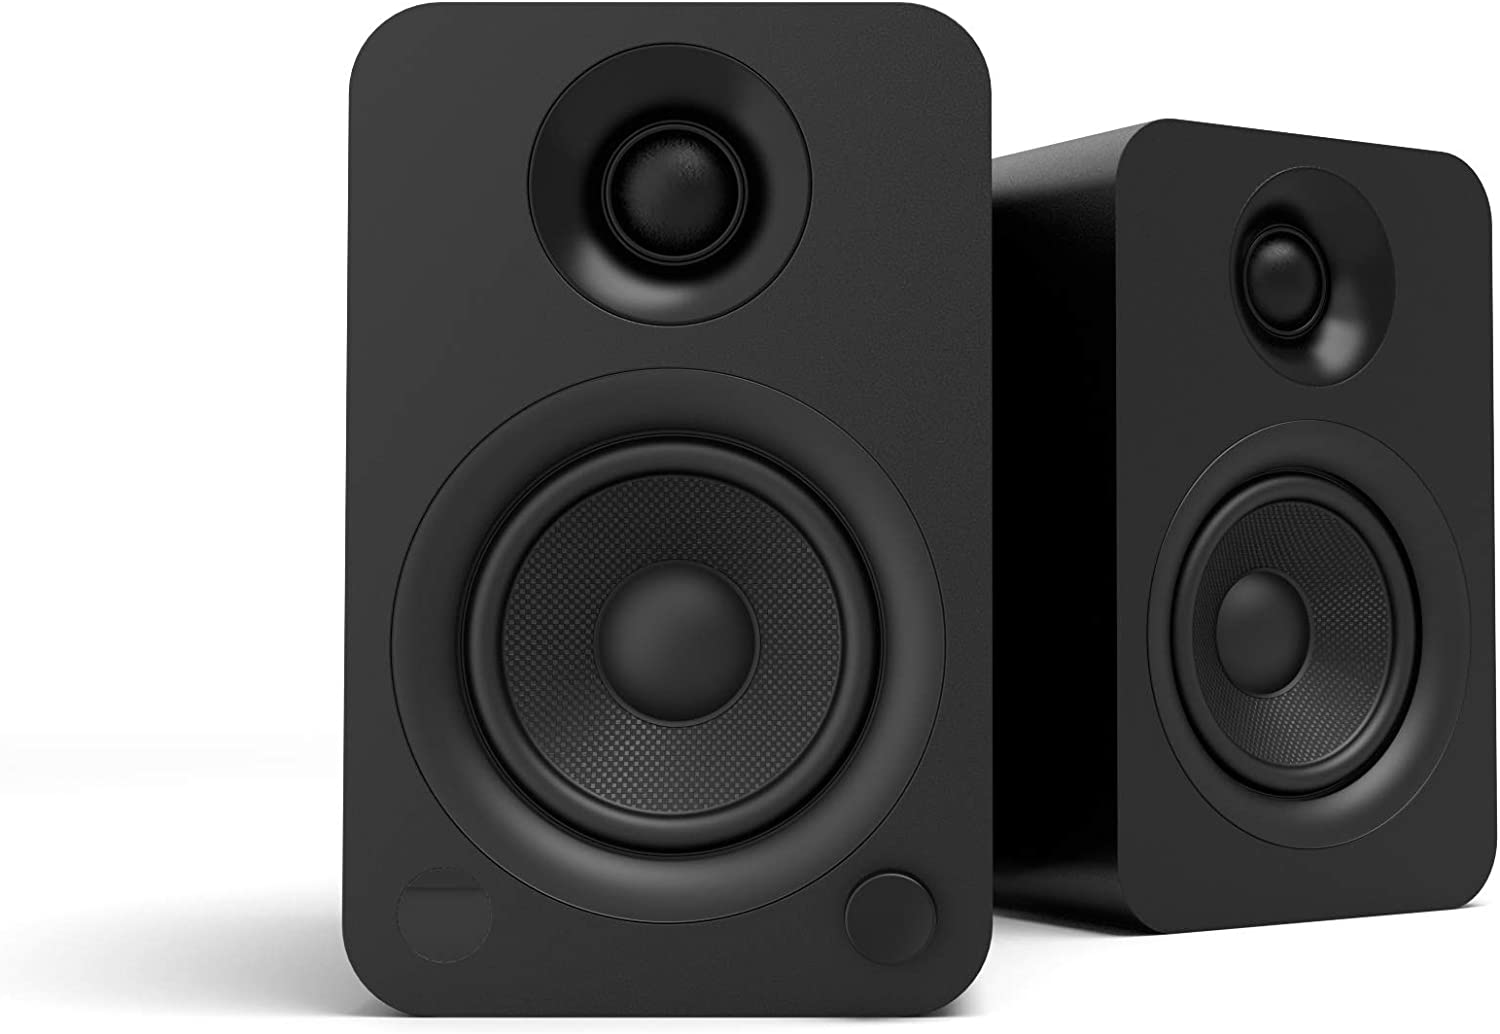 Kanto YU Powered Bookshelf Speakers with Bluetooth 4.2 and RCA Input | Features Signal Detection and Auto Stand-by | Matte Black